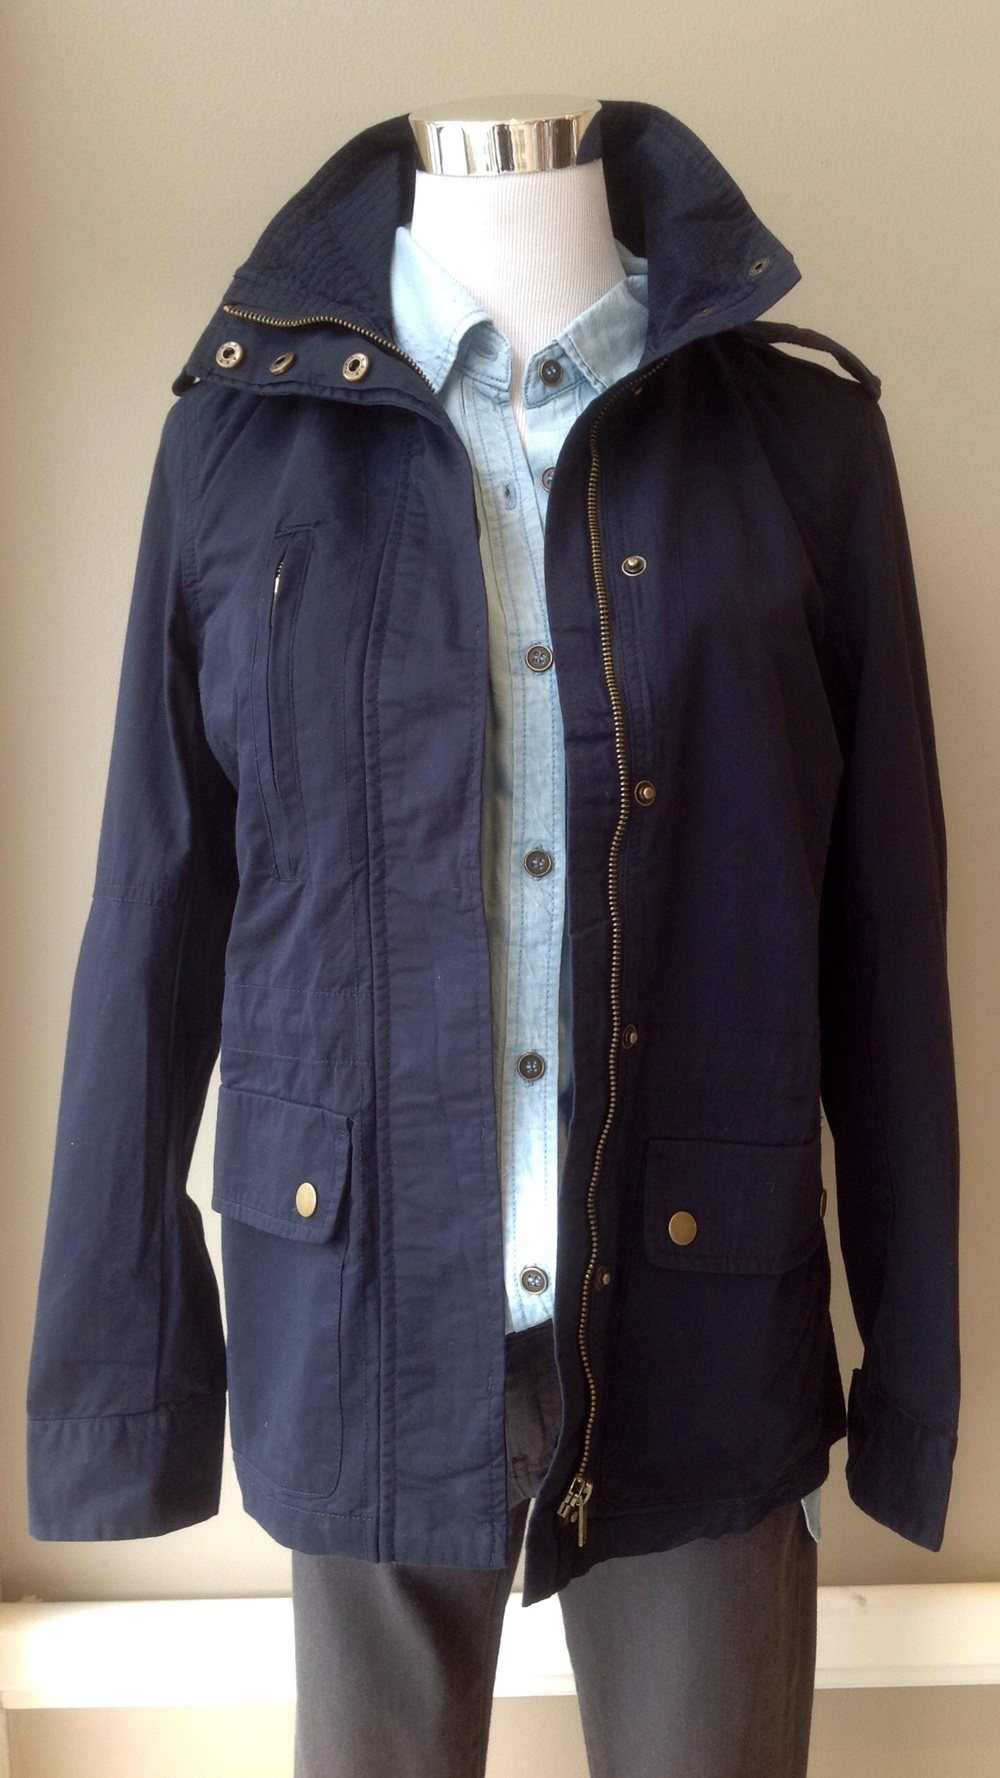 Cotton field jacket in Navy, $45